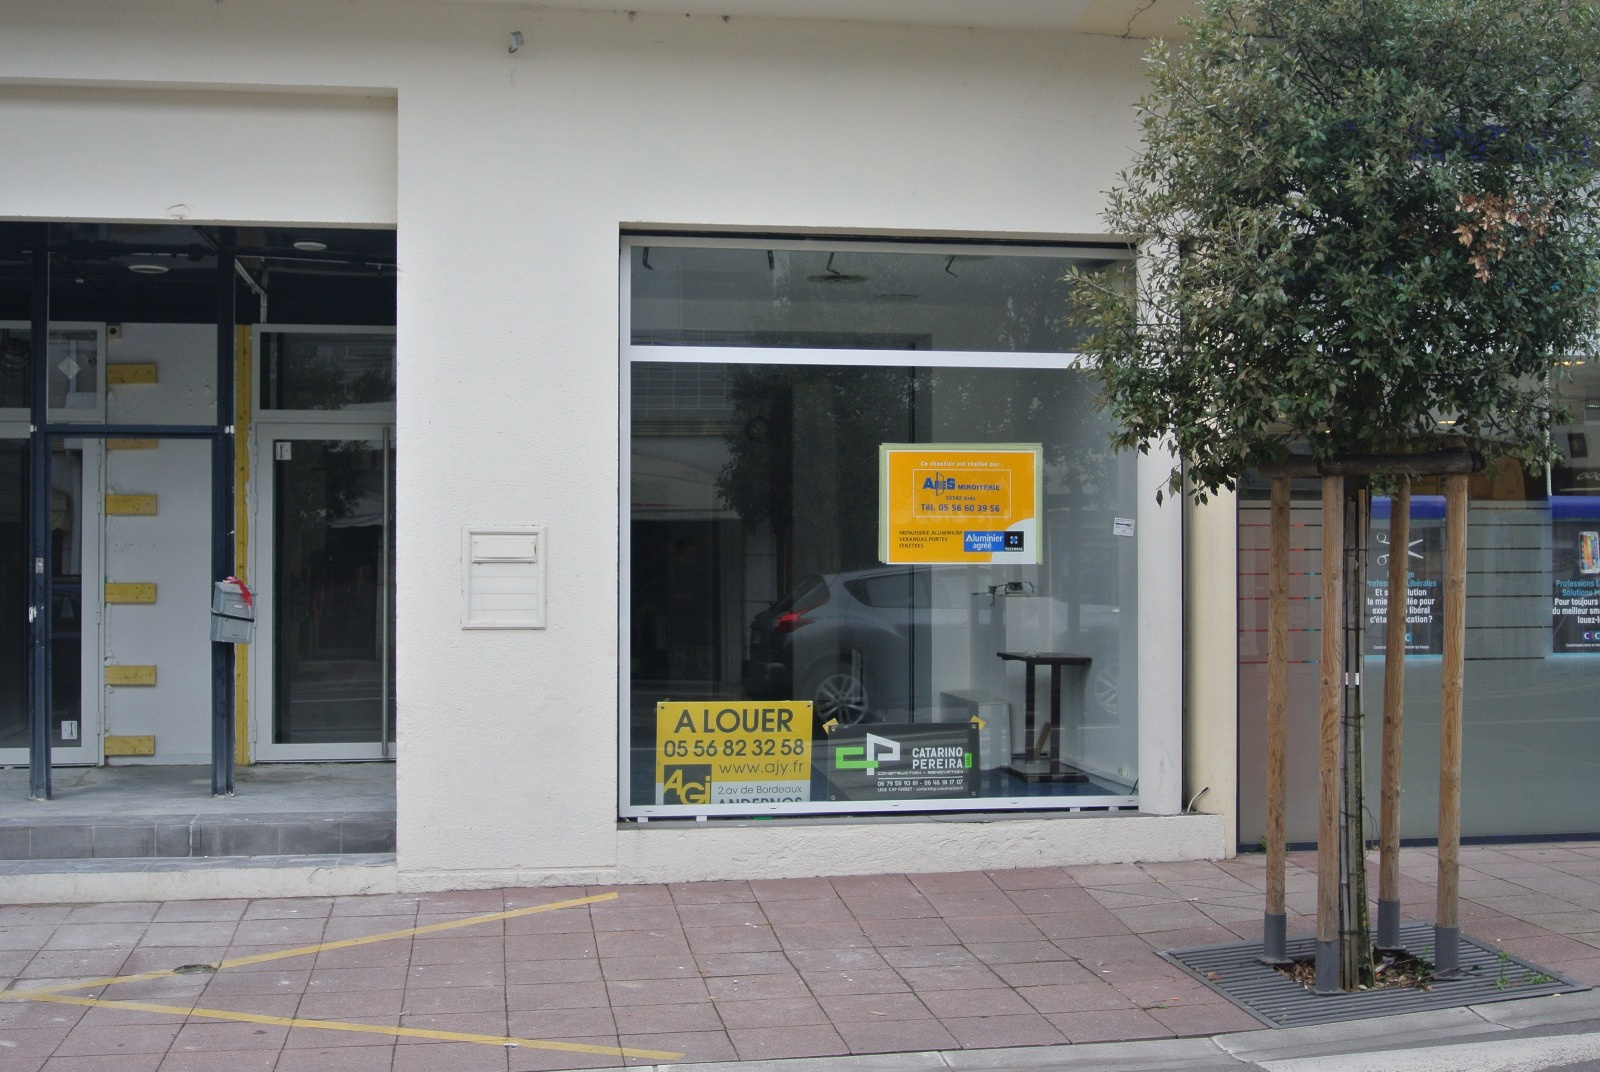 Location Immobilier Professionnel Local commercial Andernos les bains (33510)